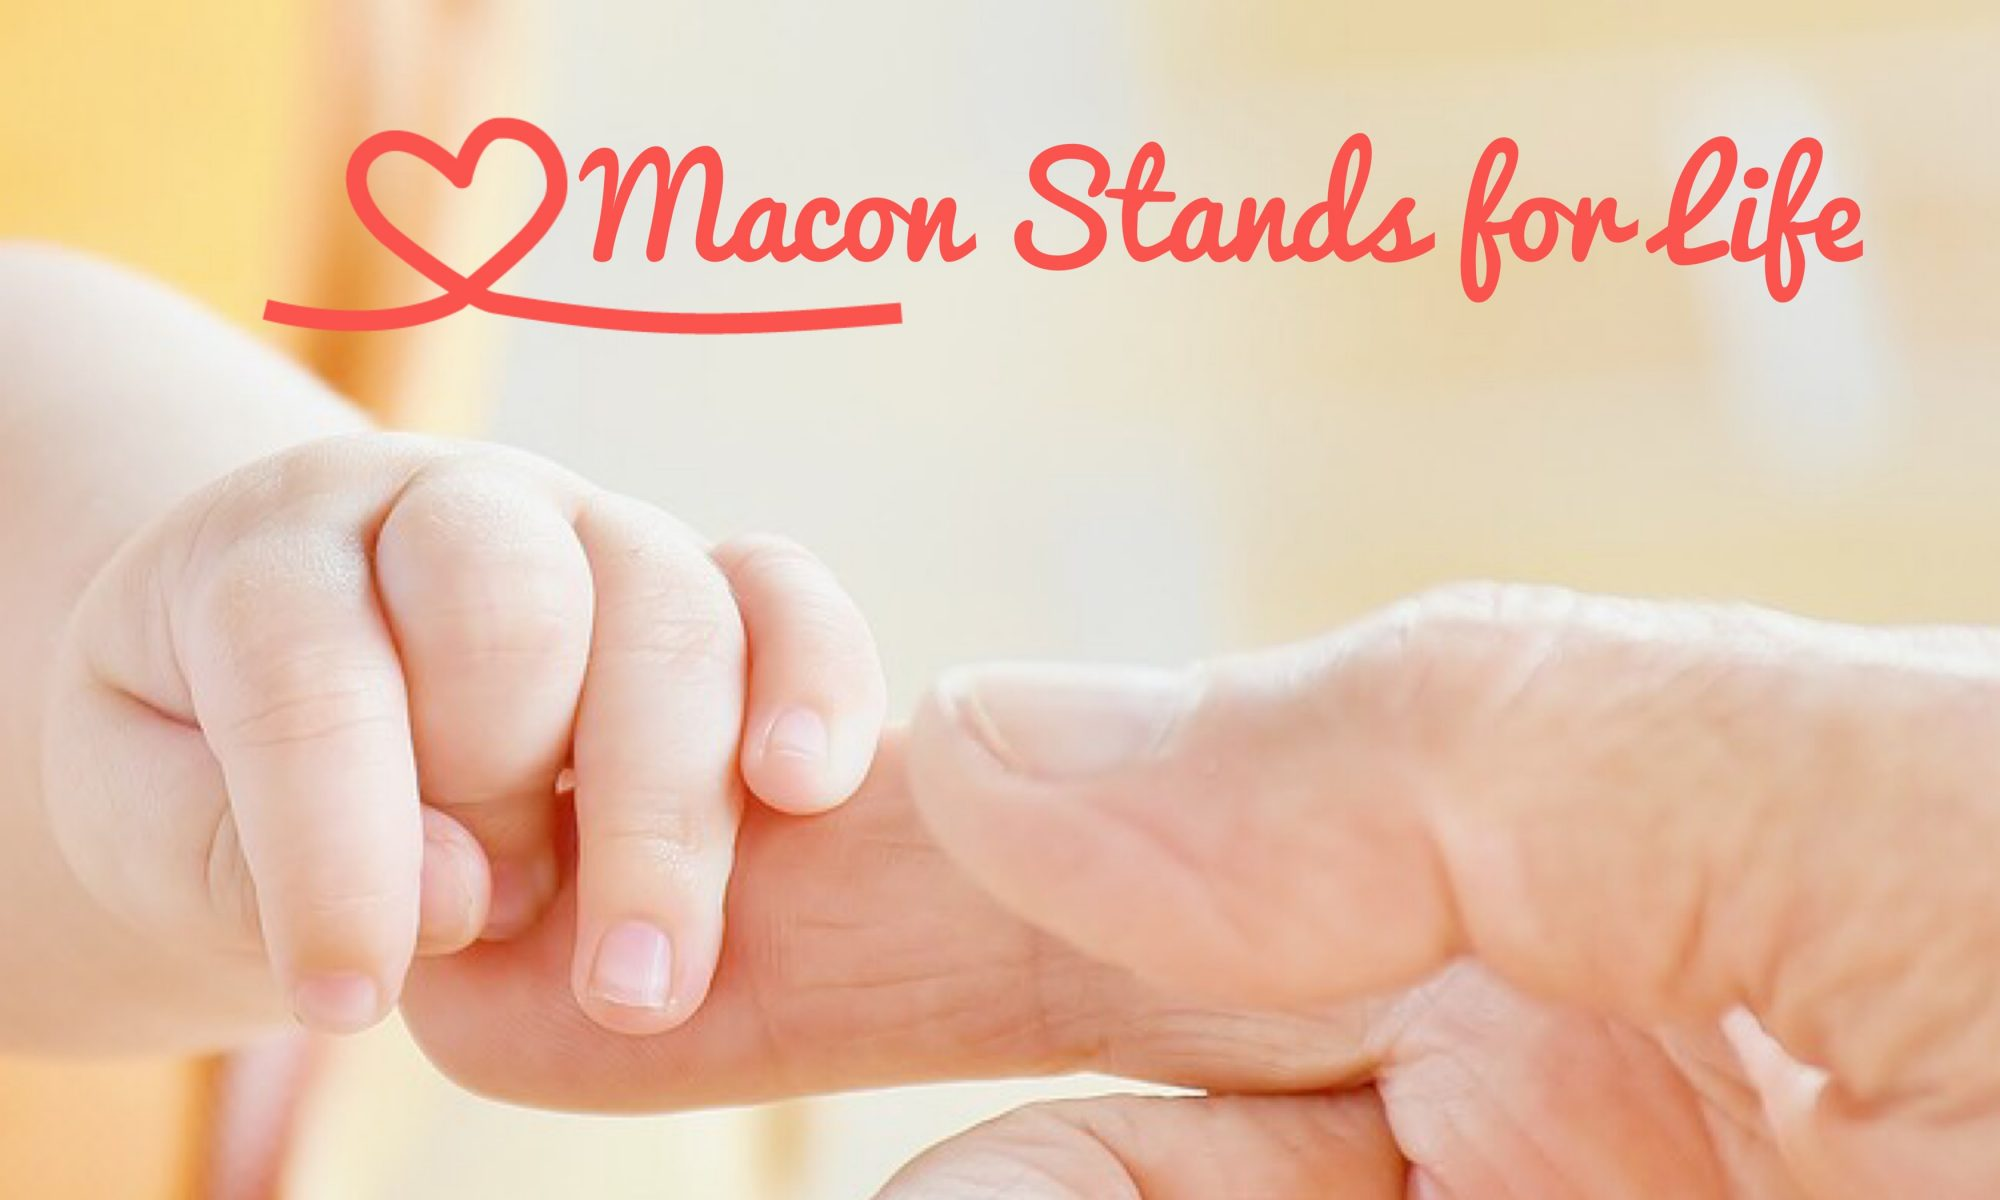 Macon Stands for Life